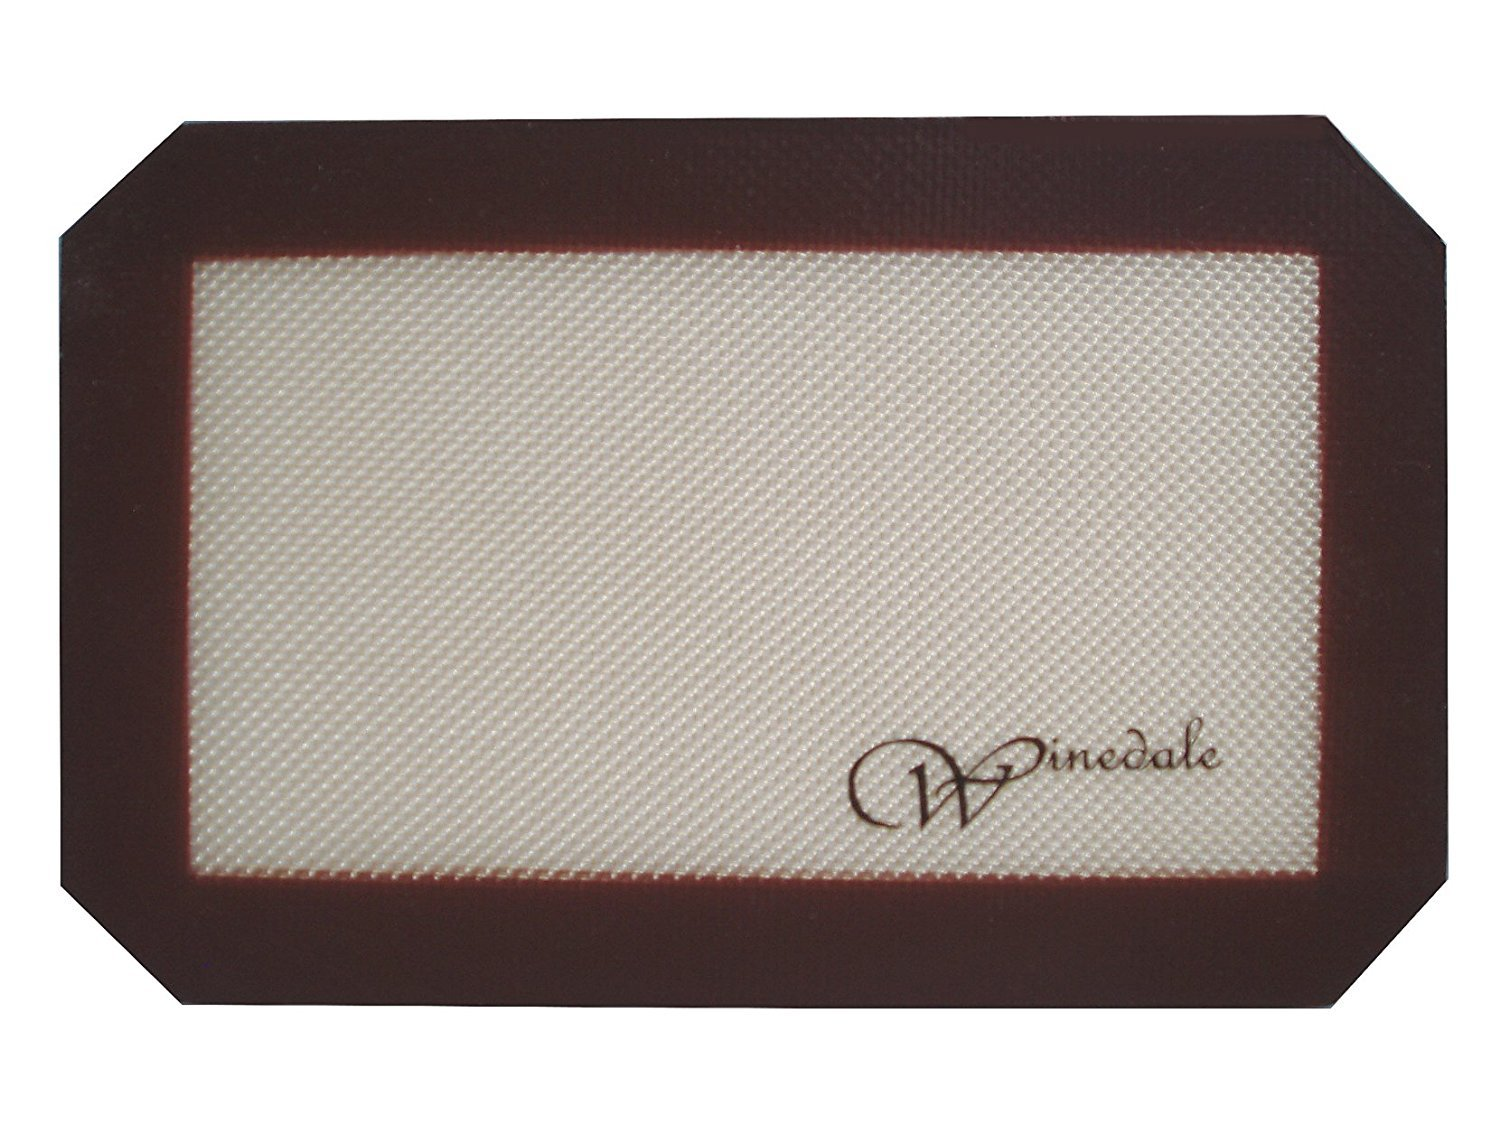 Winedale Turn Your 11x7 Toaster Oven Pan, Baking Pan, Biscuit or Brownie Pan Into A Non-Stick Pan. 11x7 Mat Measures 10 x 6-1/4 and is Made For The 11x7 Cookie Sheet or Baking Pan.